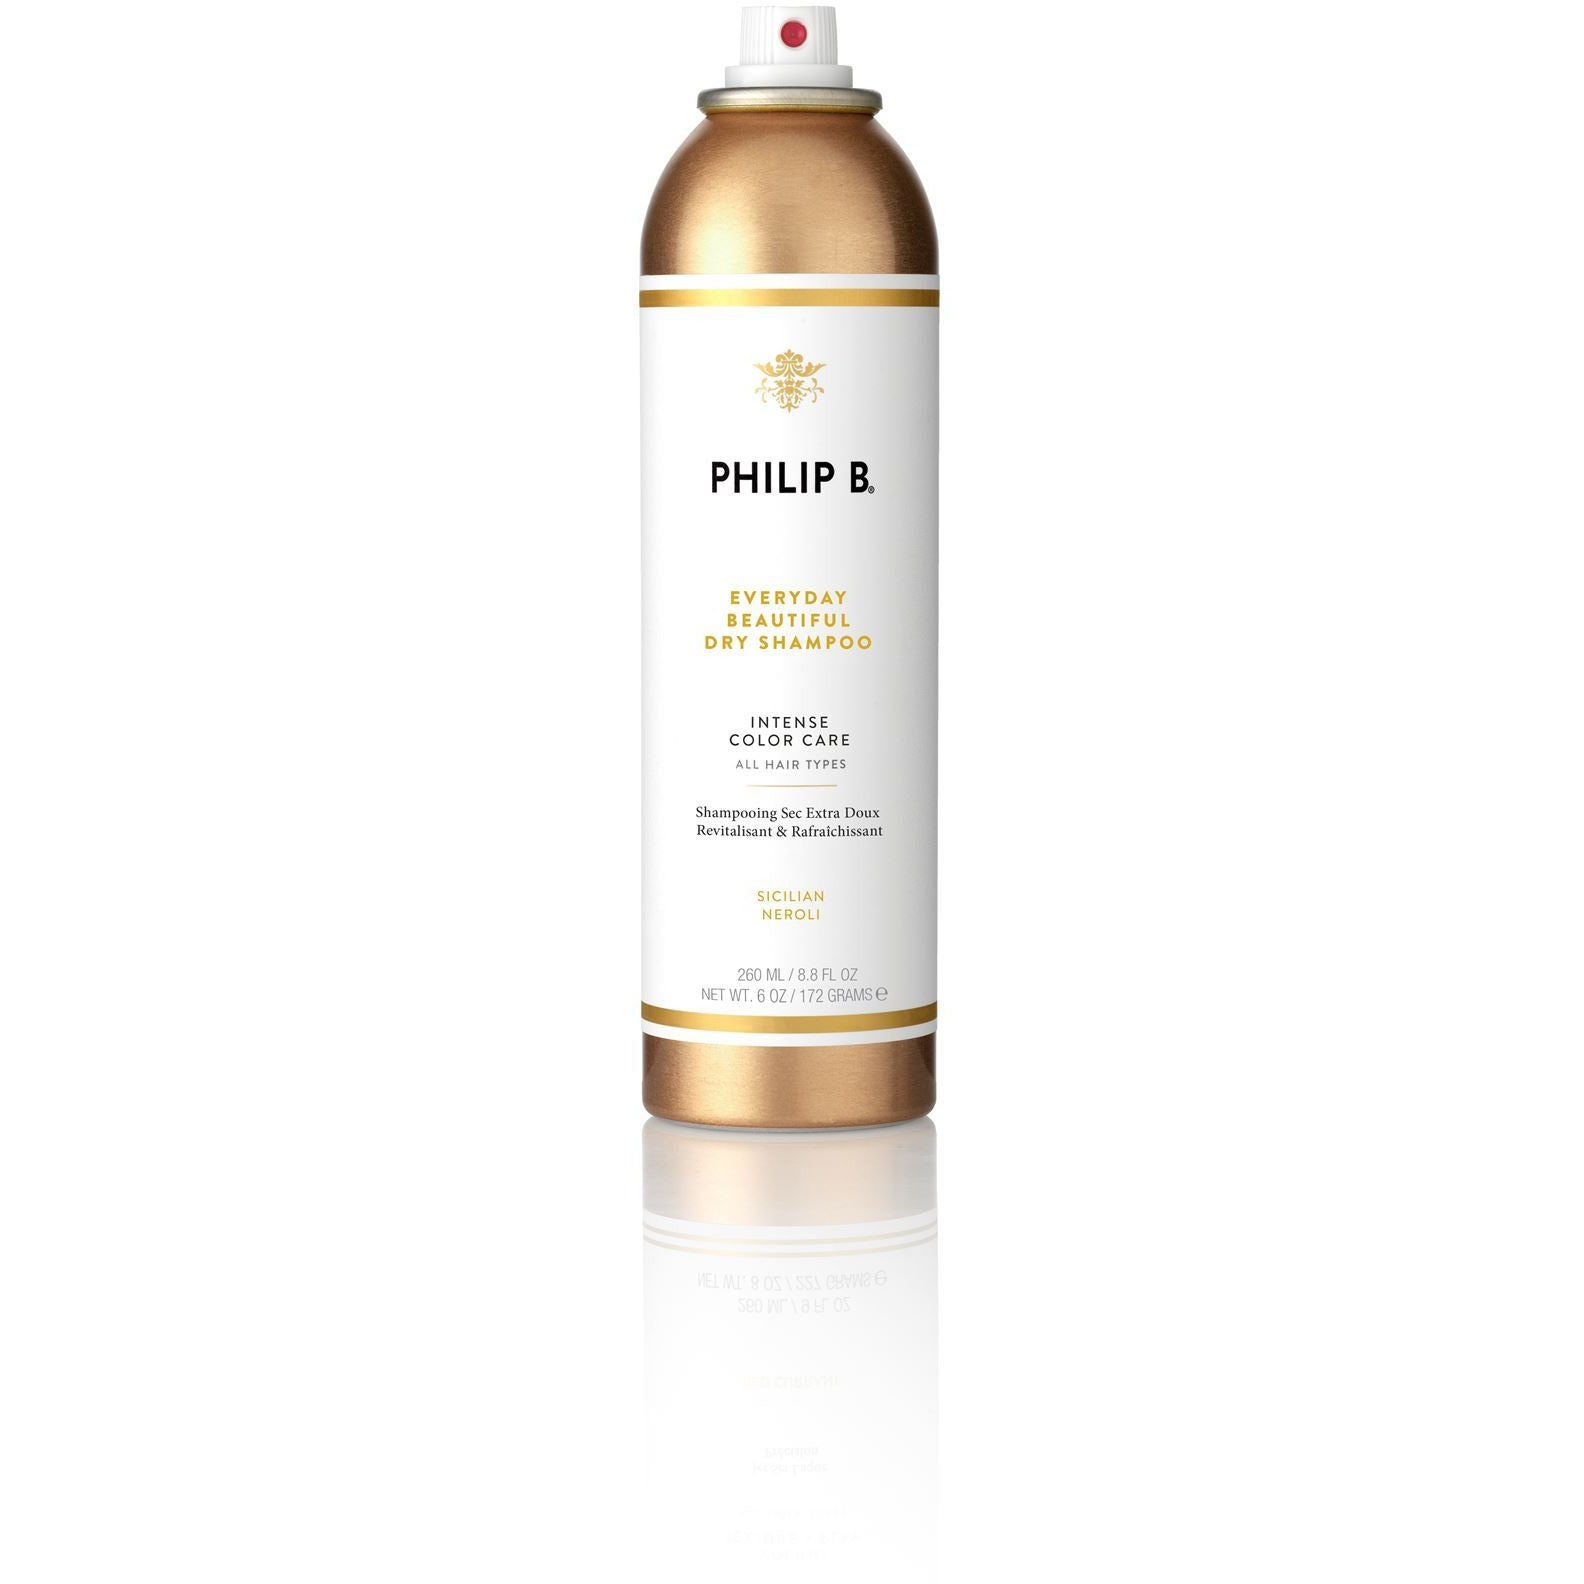 Philip B Everyday Beautiful Dry Shampoo 260 ml